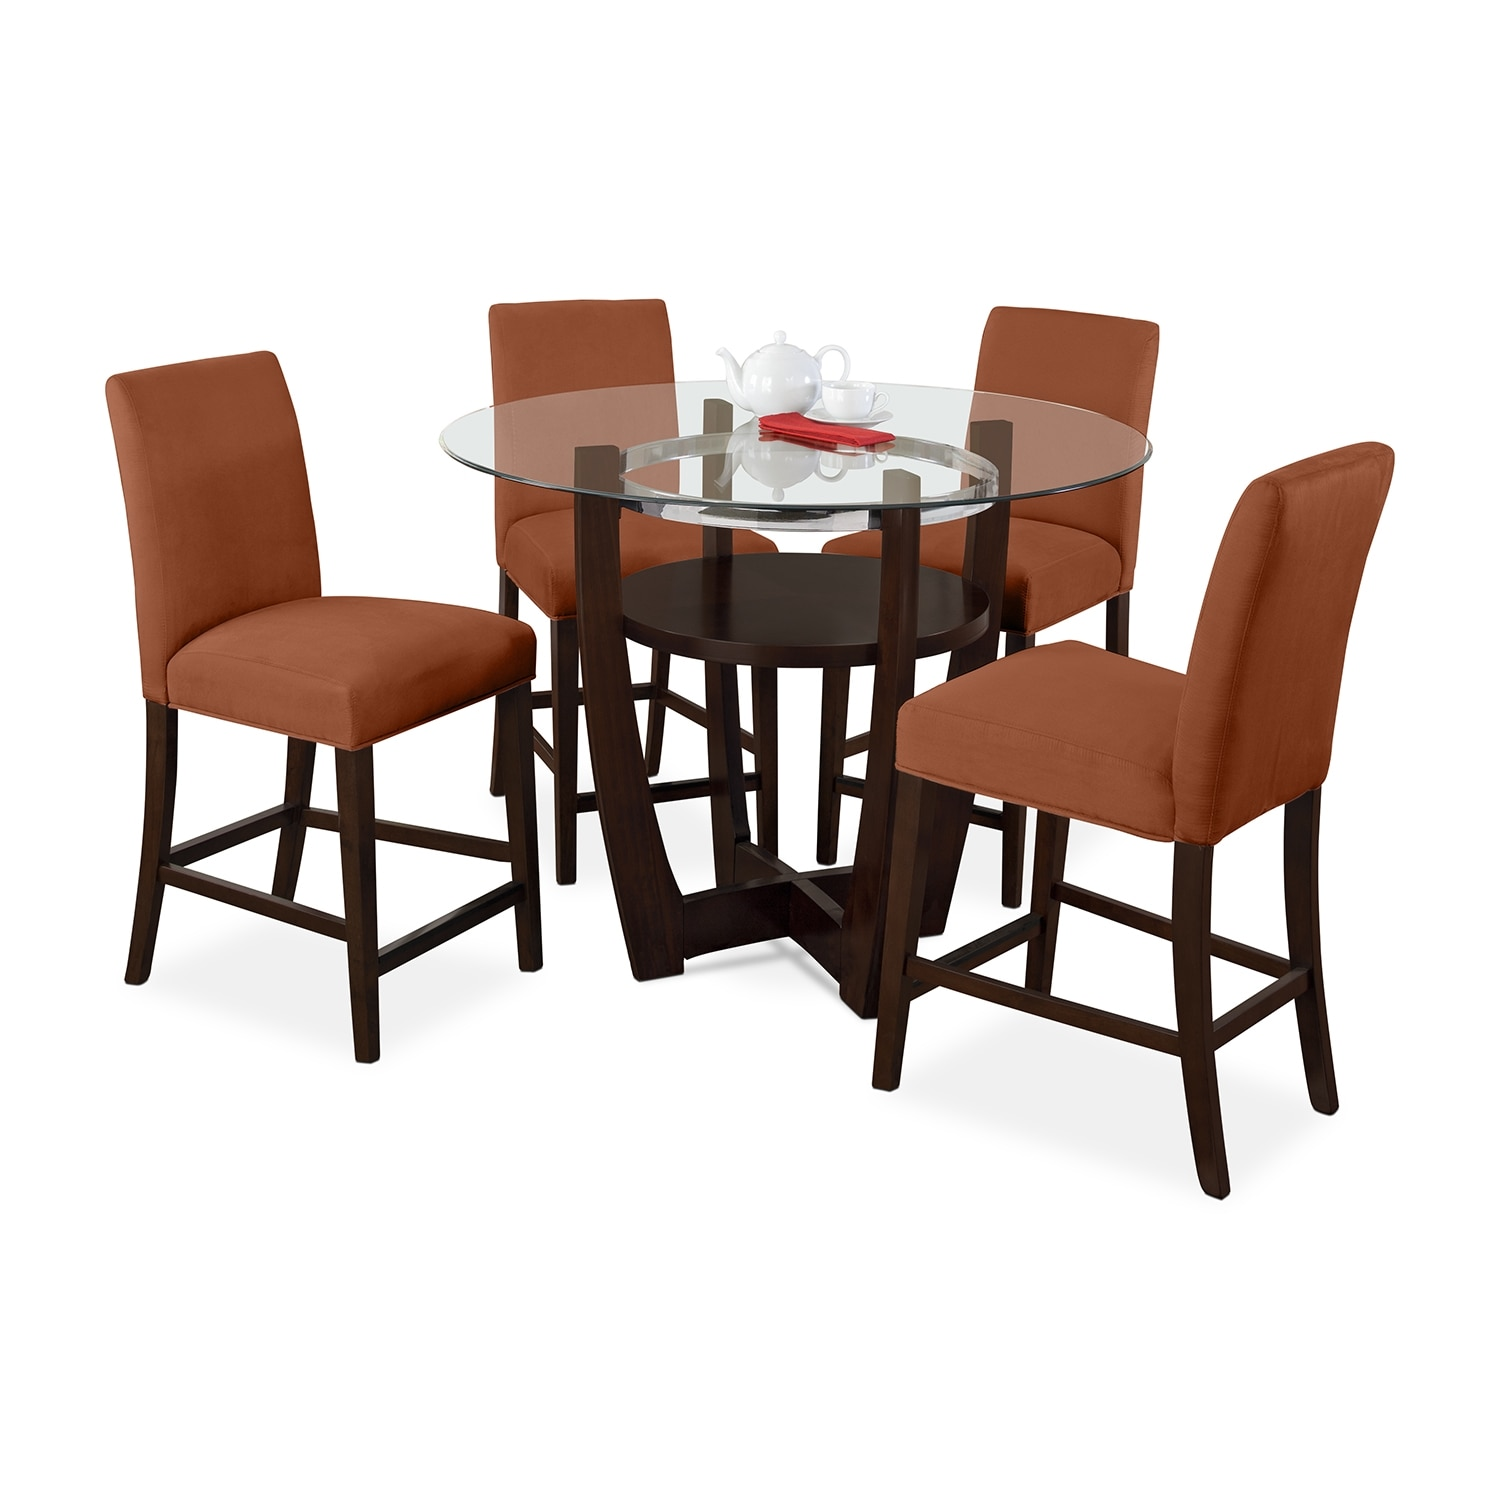 High Quality Alcove Counter Height Dinette With 4 Side Chairs   Orange